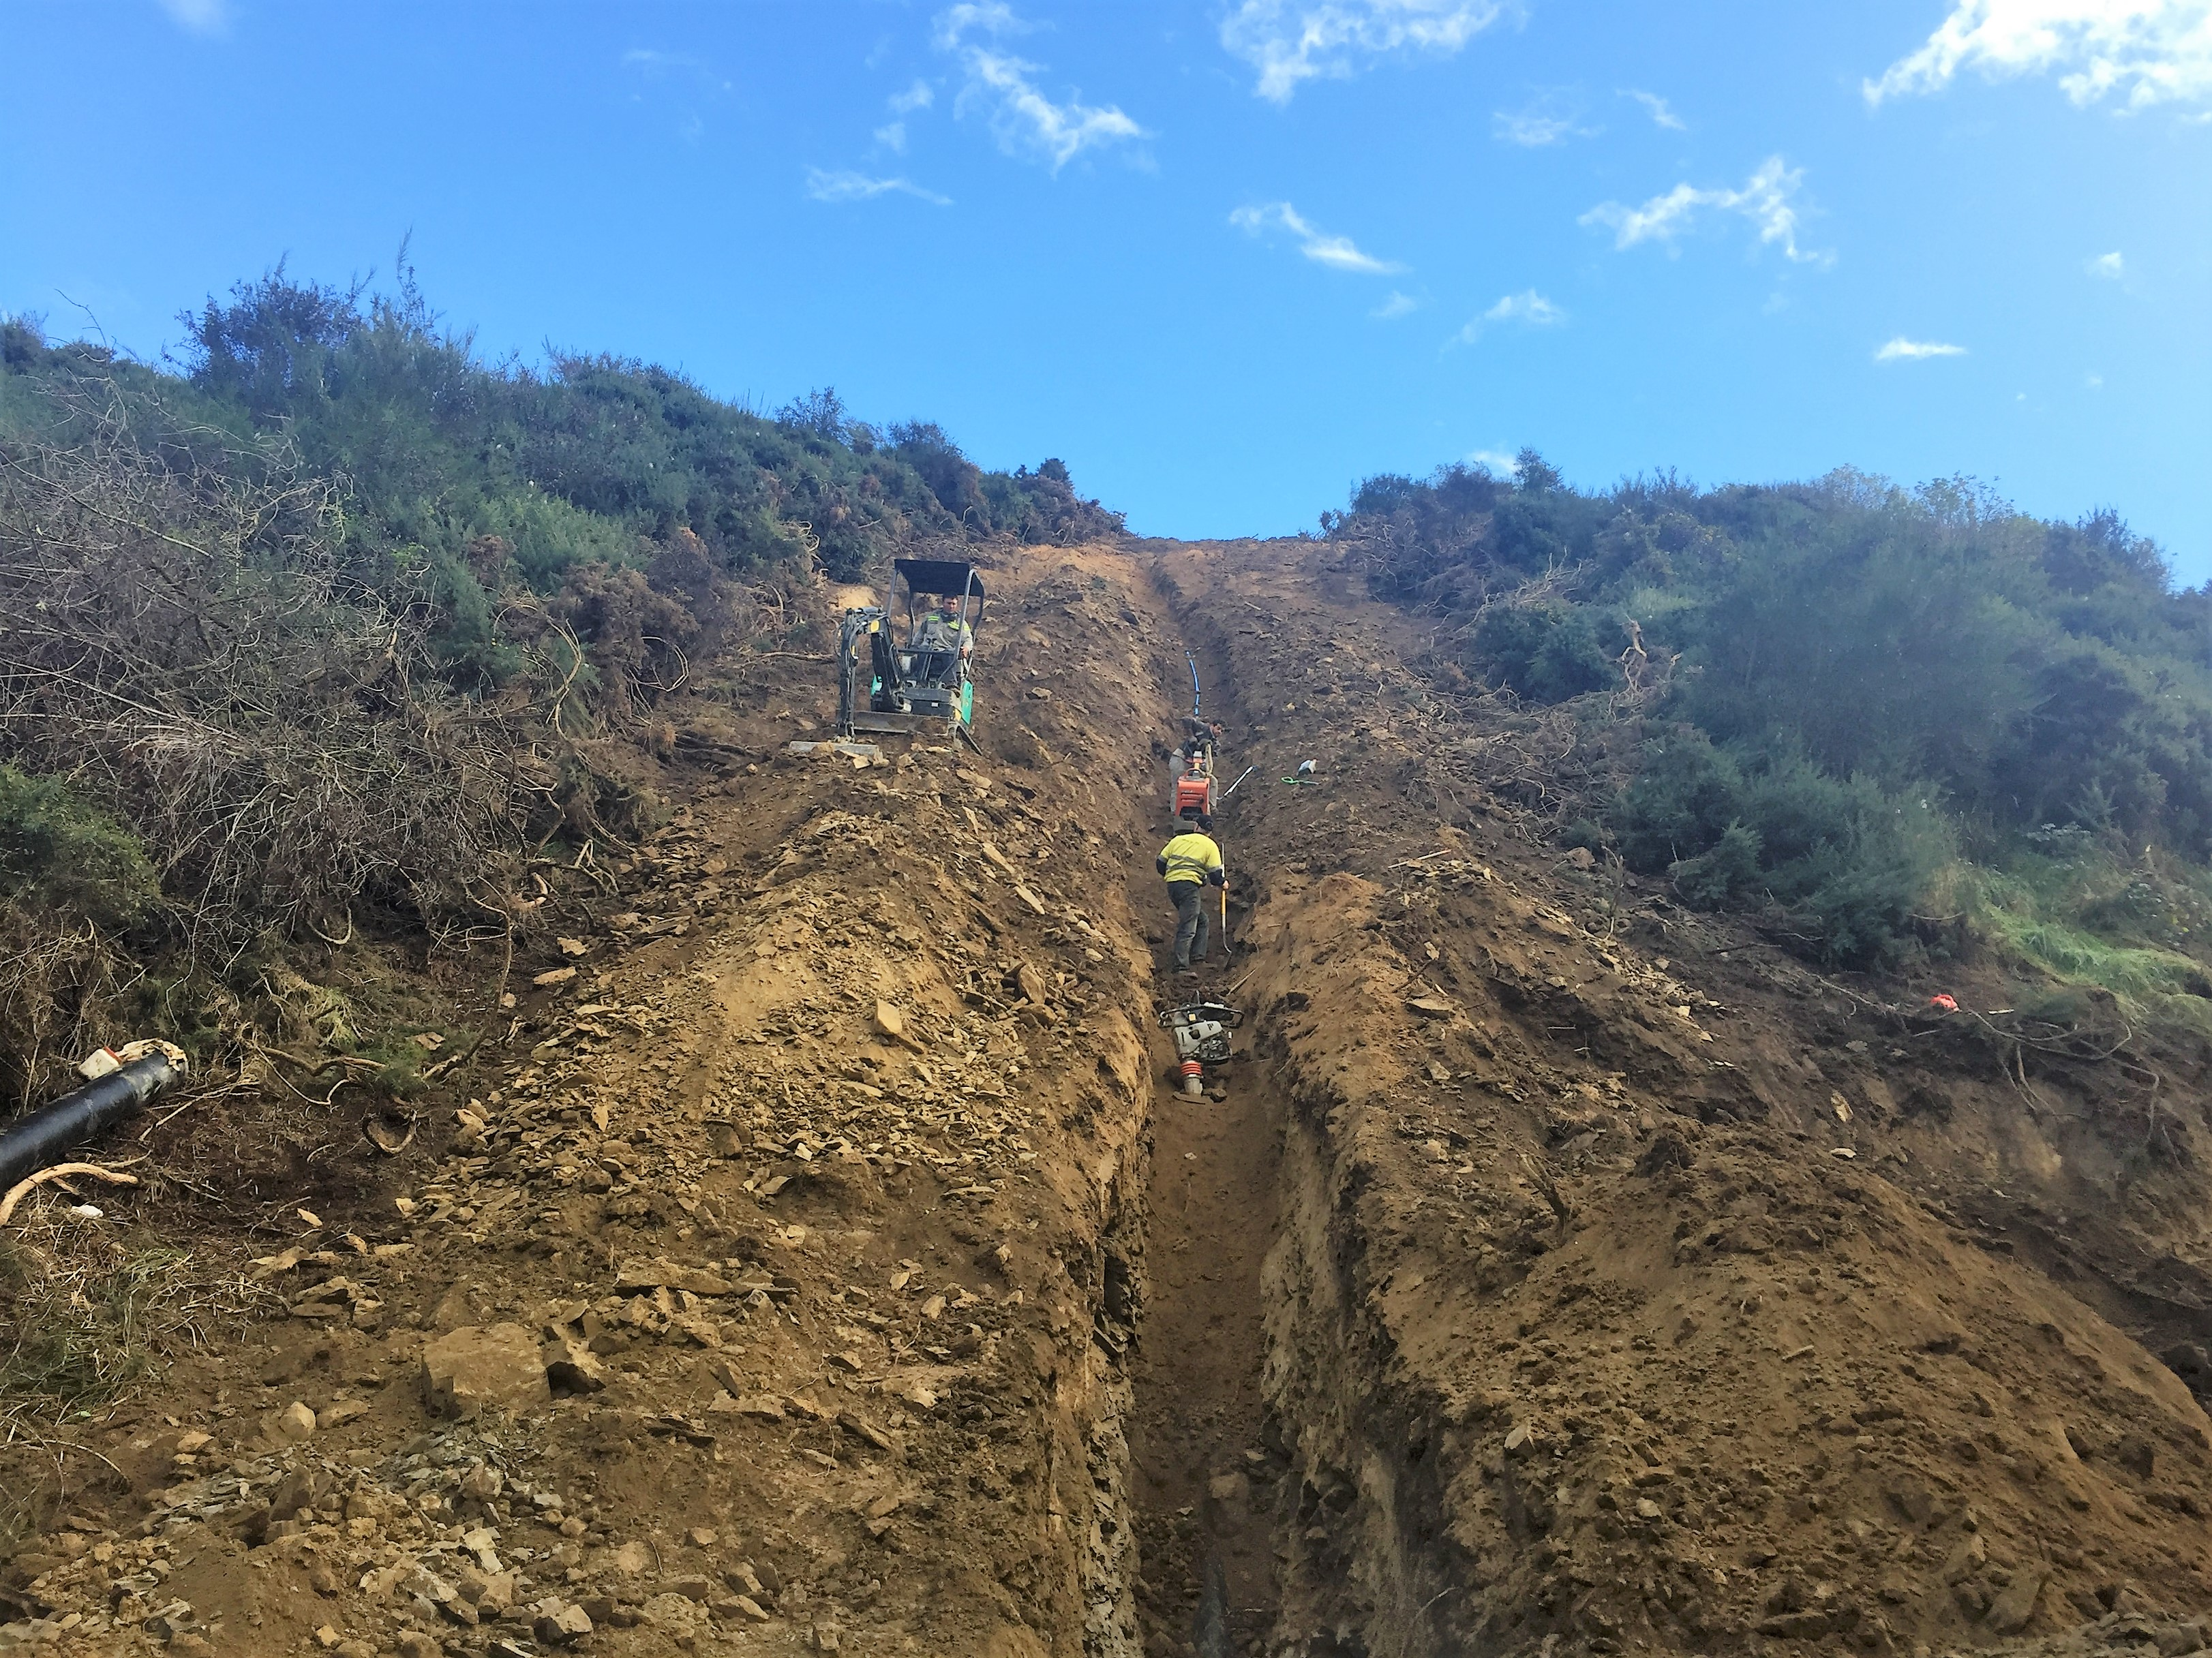 Backfilling and compacting on steep hill face